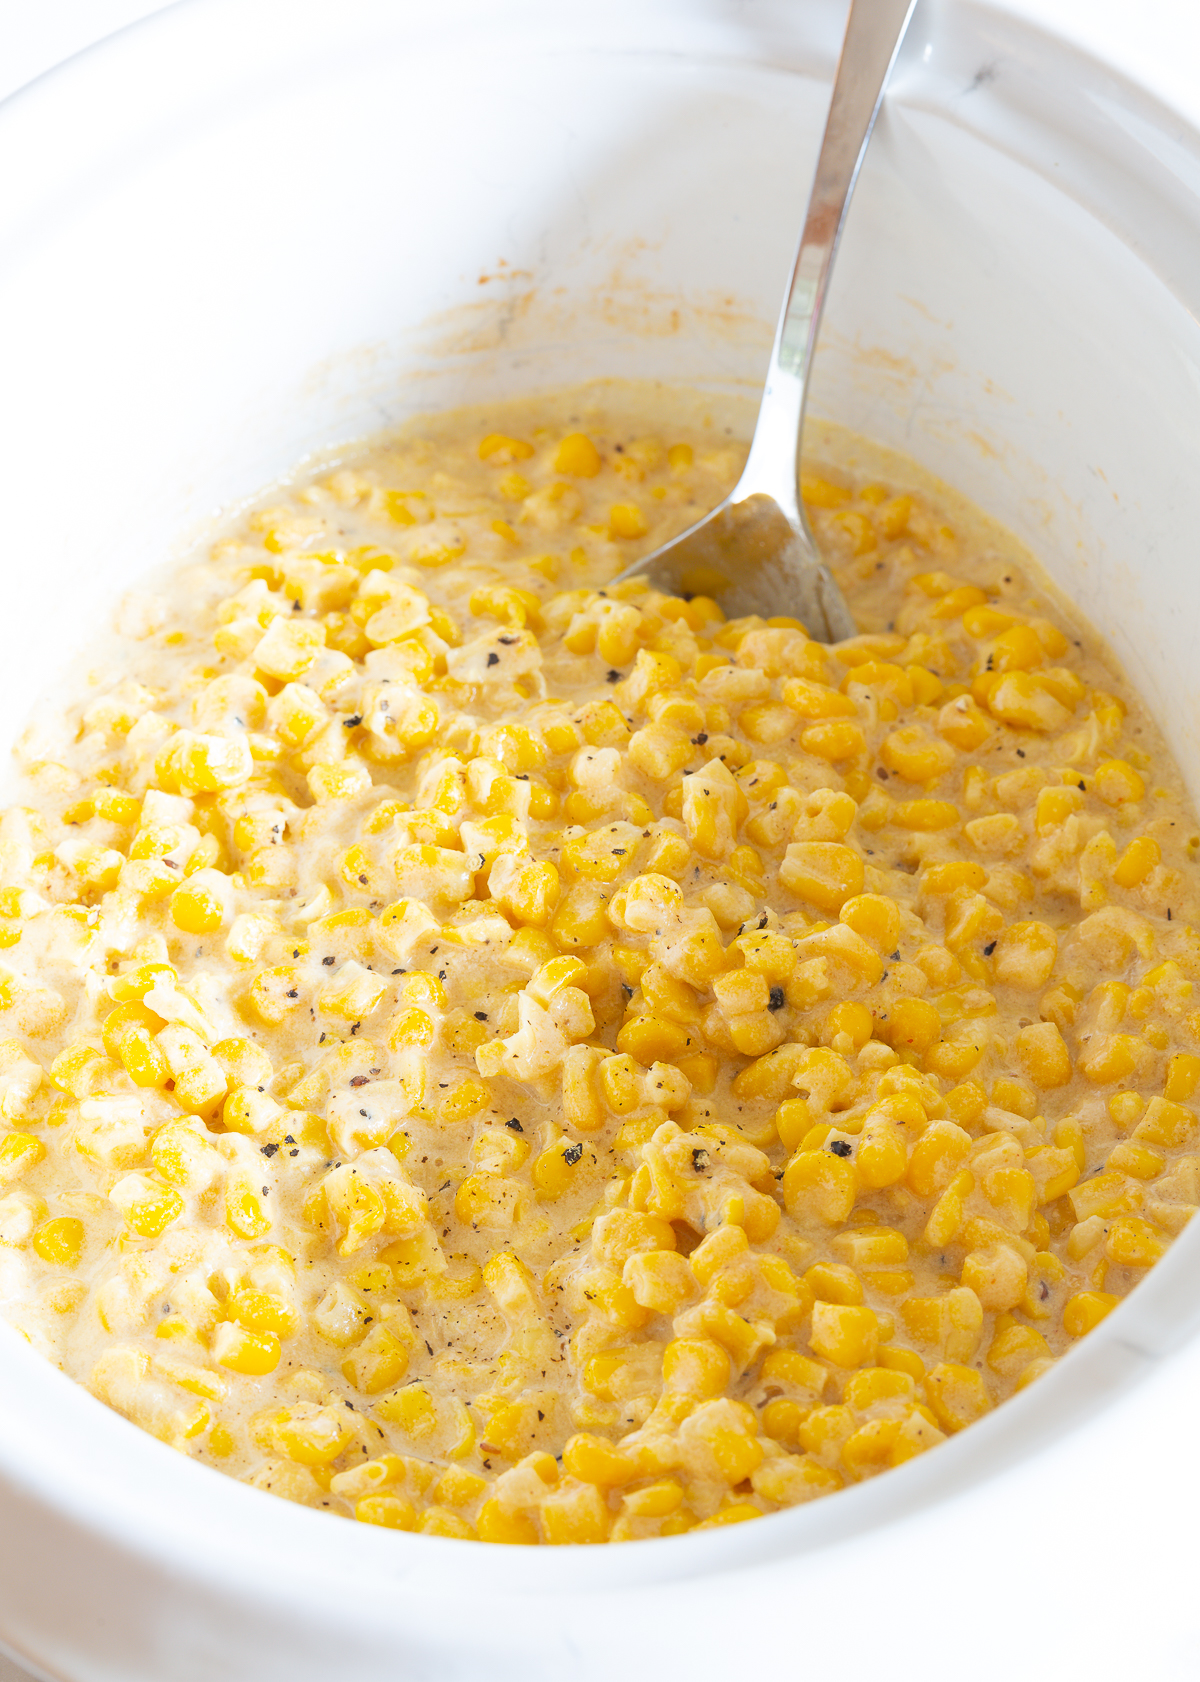 Crock Pot Creamed Corn Recipe #ASpicyPerspective #corn #thanksgiving #holidays #southern #crockpot #slowcooker